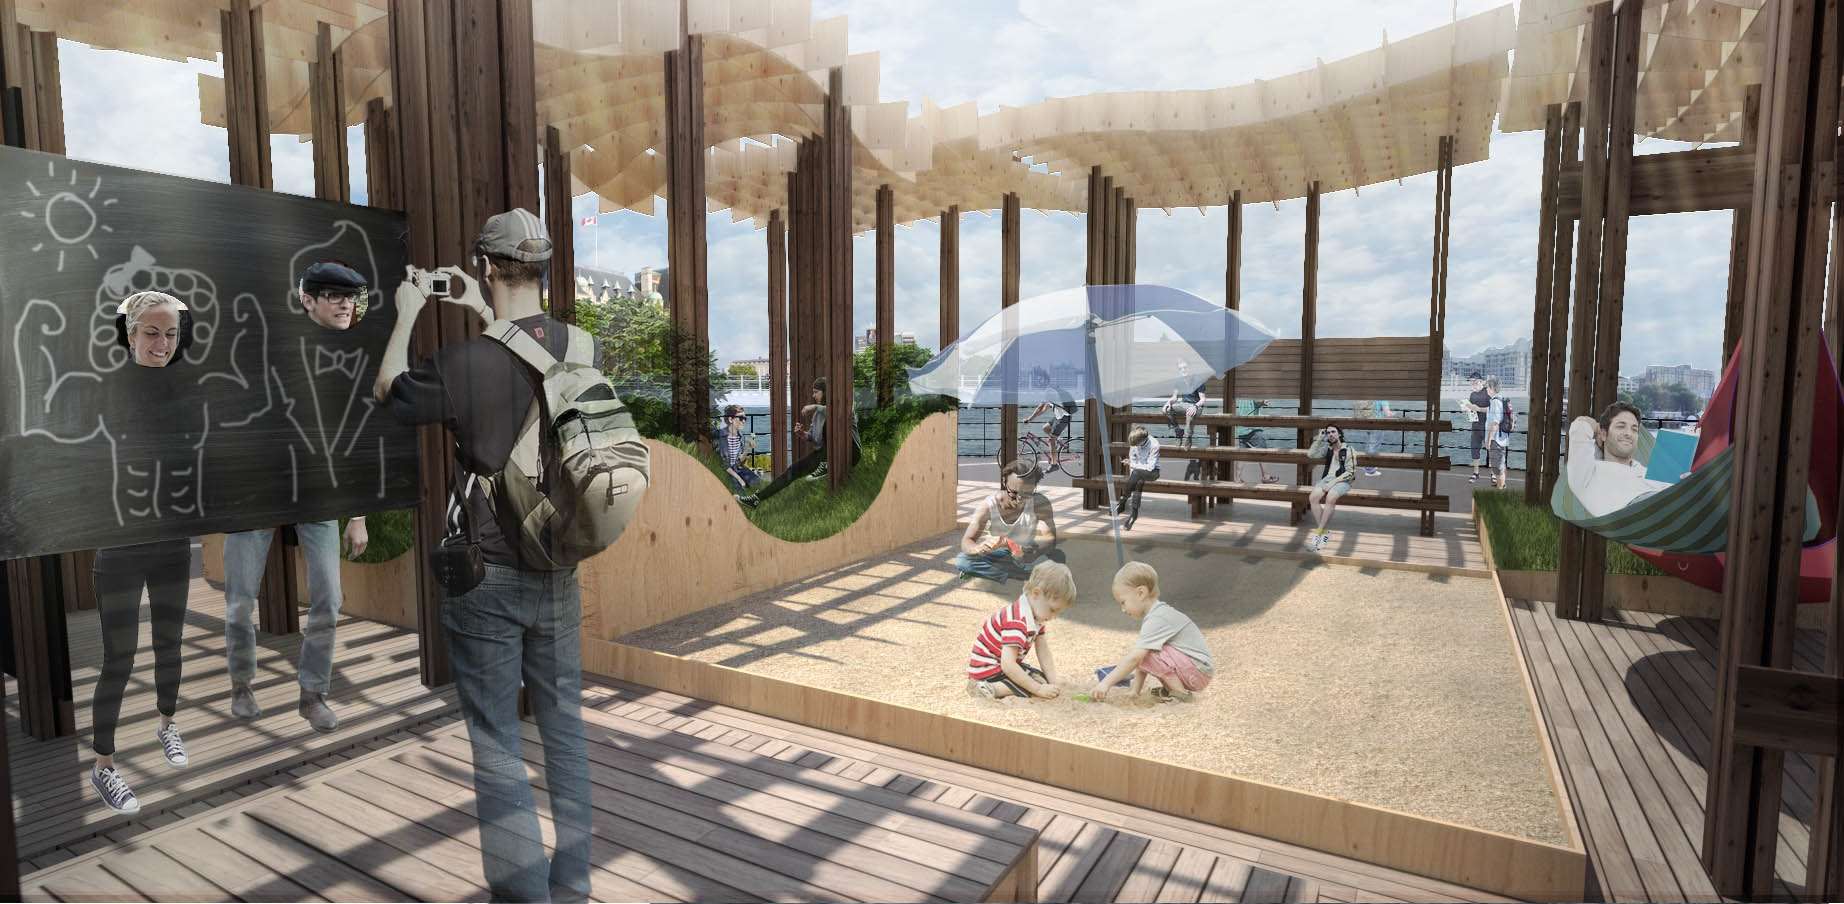 See more on our   Ship Point Pop-up project page  .